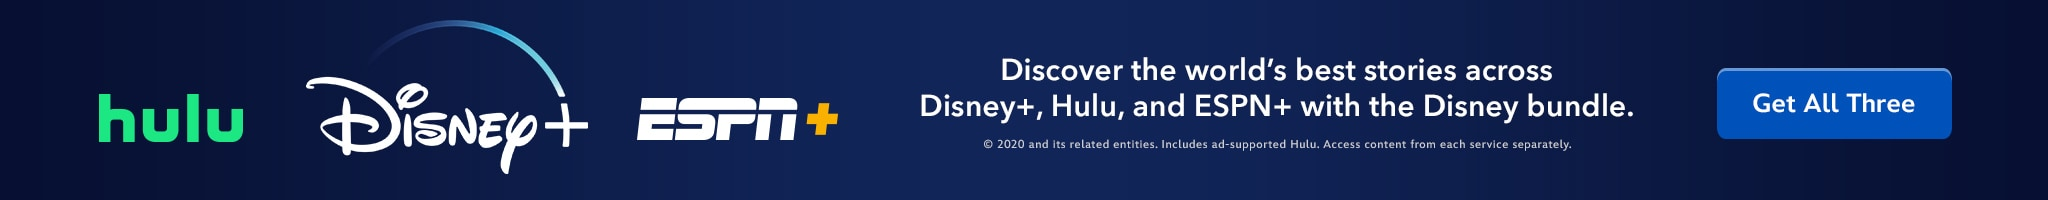 Disney+ | Hulu | ESPN+ | Discover the world's best stories across Disney+, Hulu, and ESPN+ with the Disney bundle. | Get all Three.